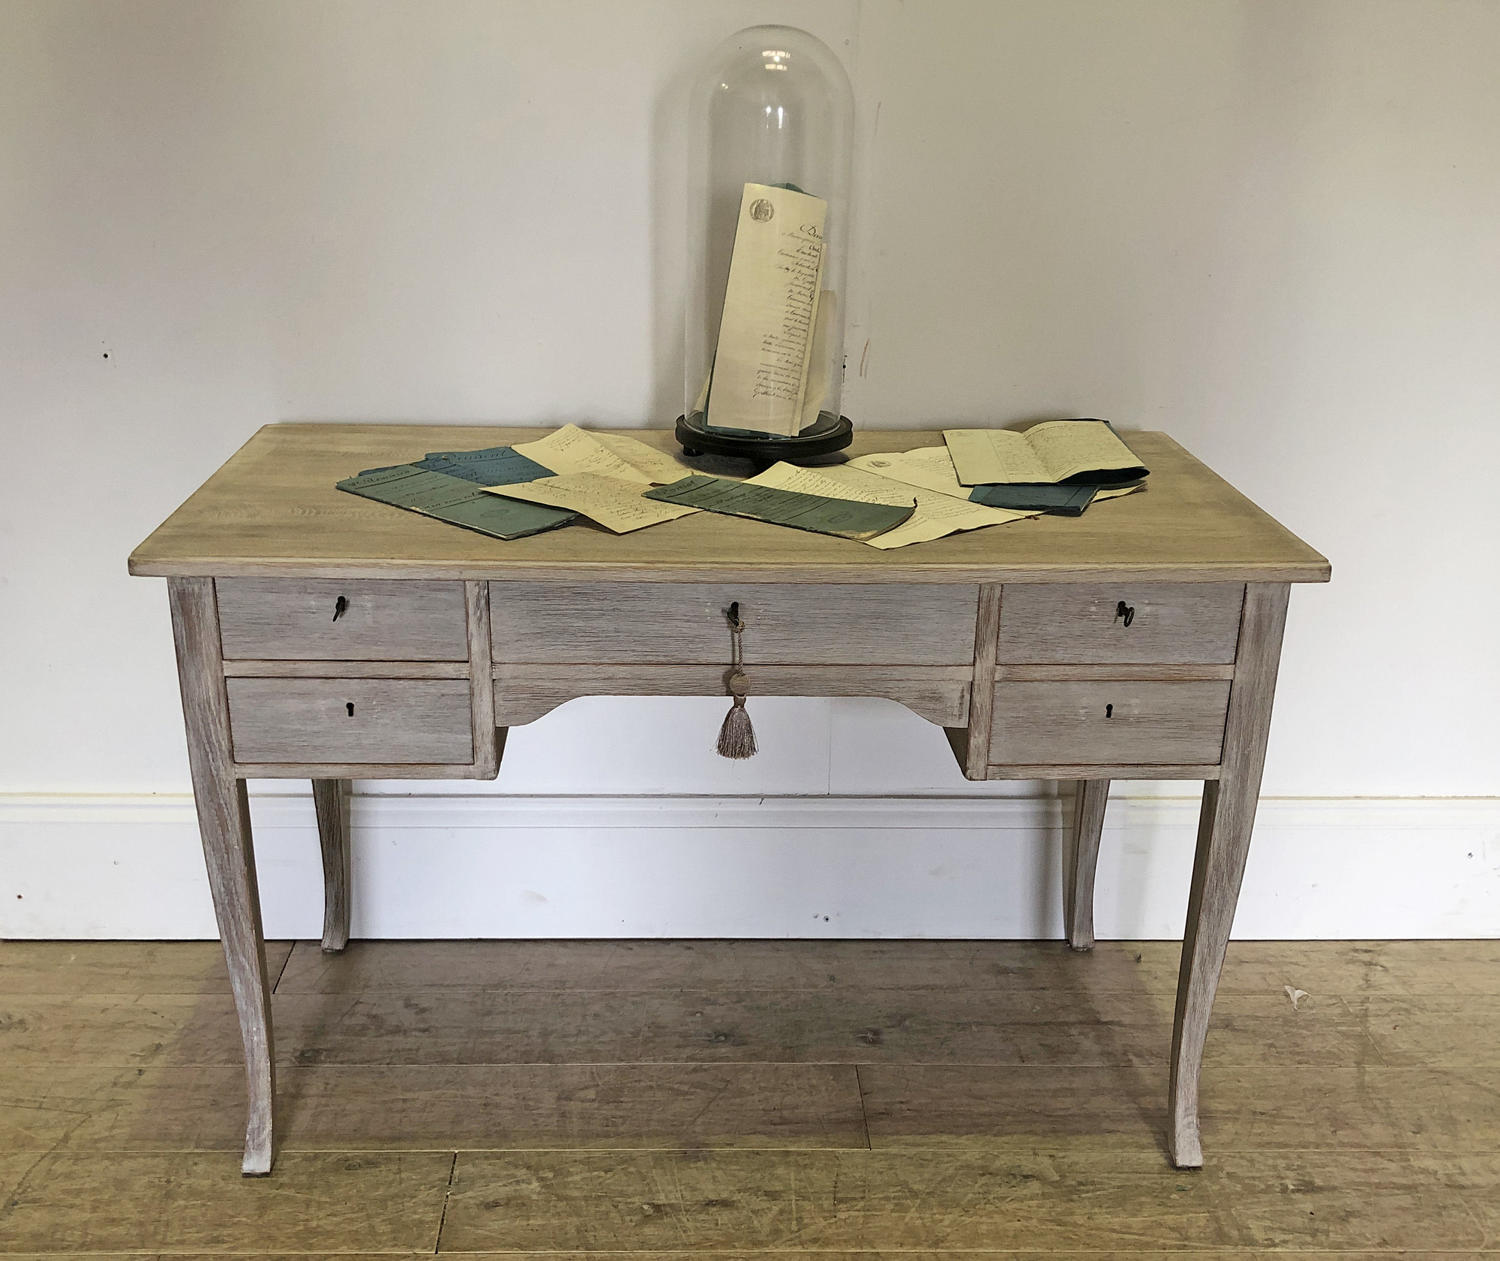 Simple 20th c Swedish Oak desk - circa 1950